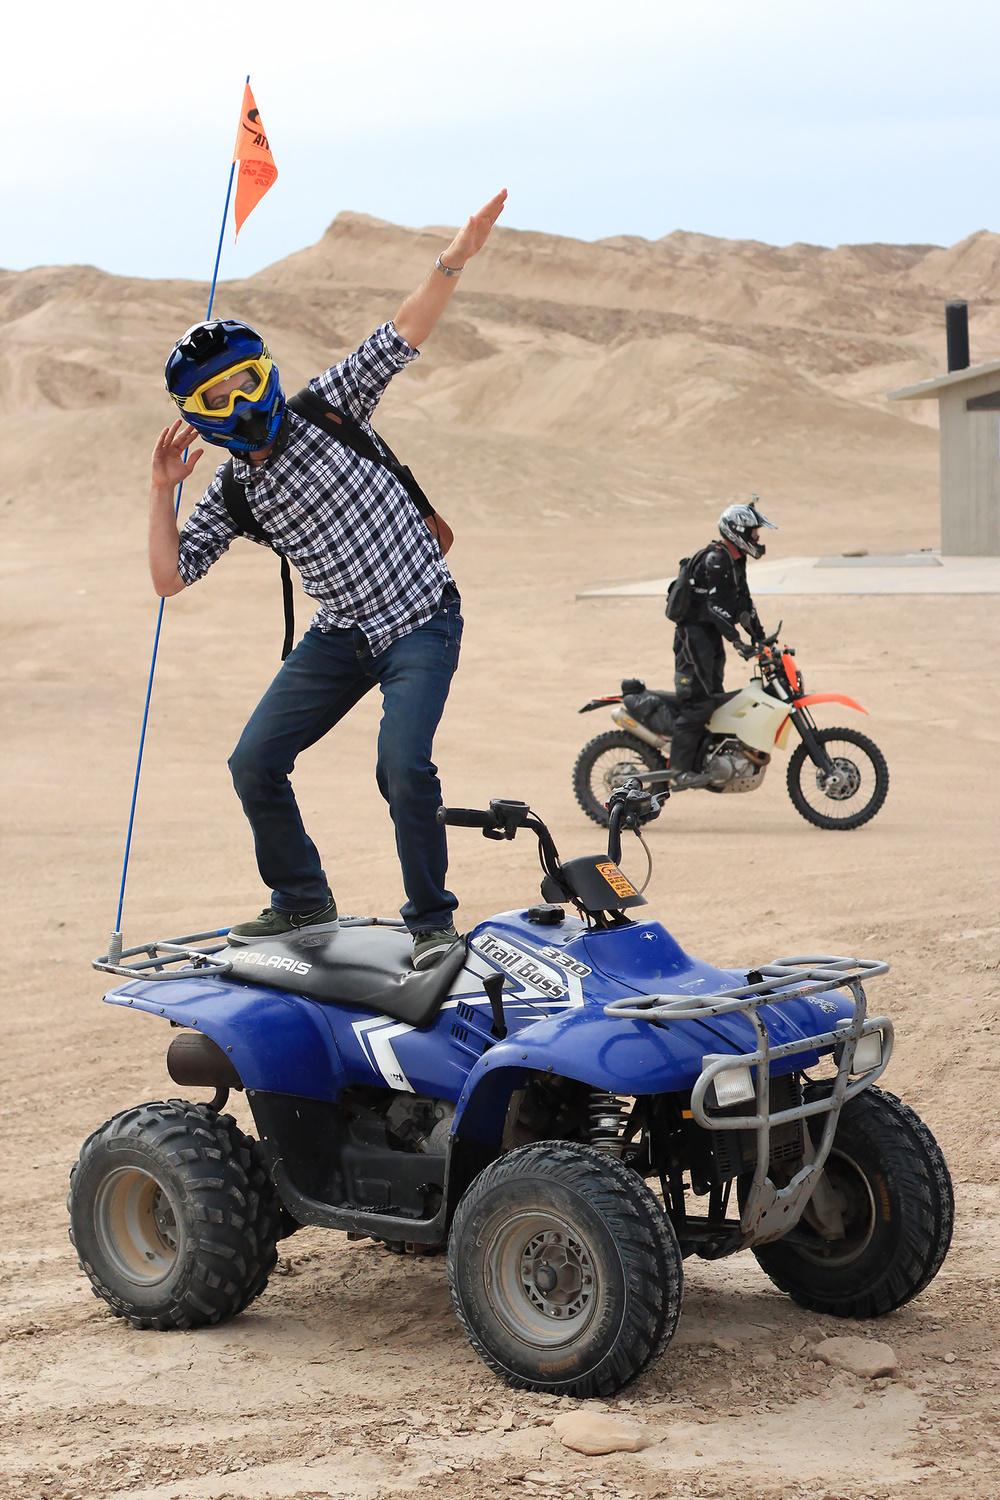 John striking a pose on the ATV